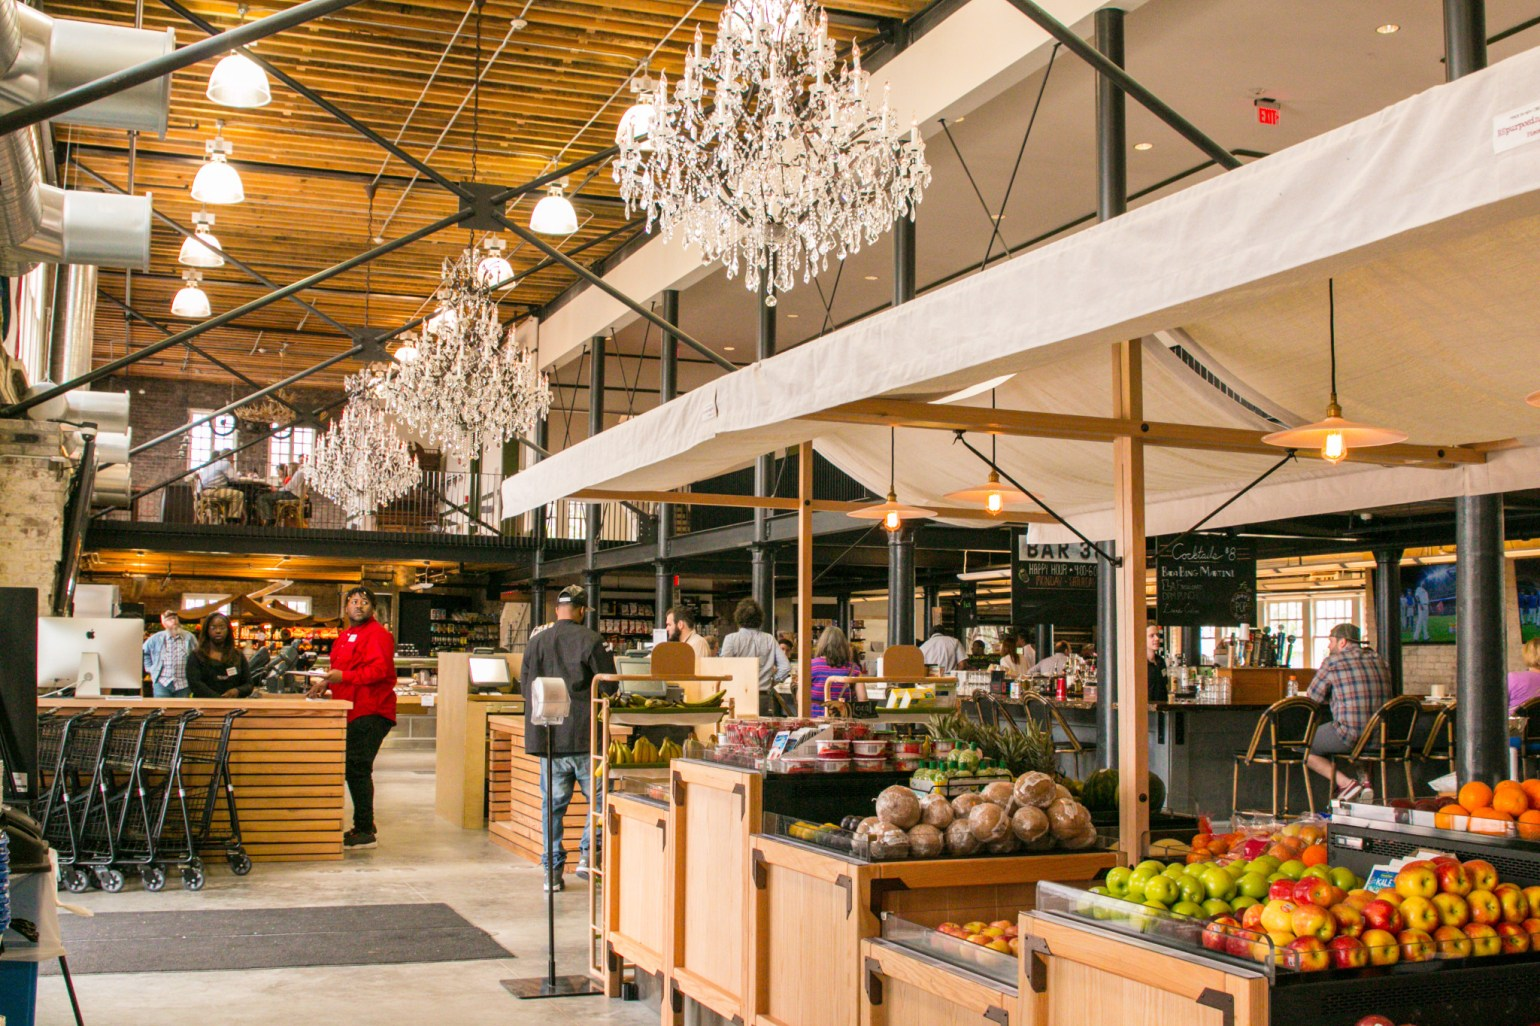 The deliciously appointed Dryades Public Market. (Photo: Rebecca Ratliff)